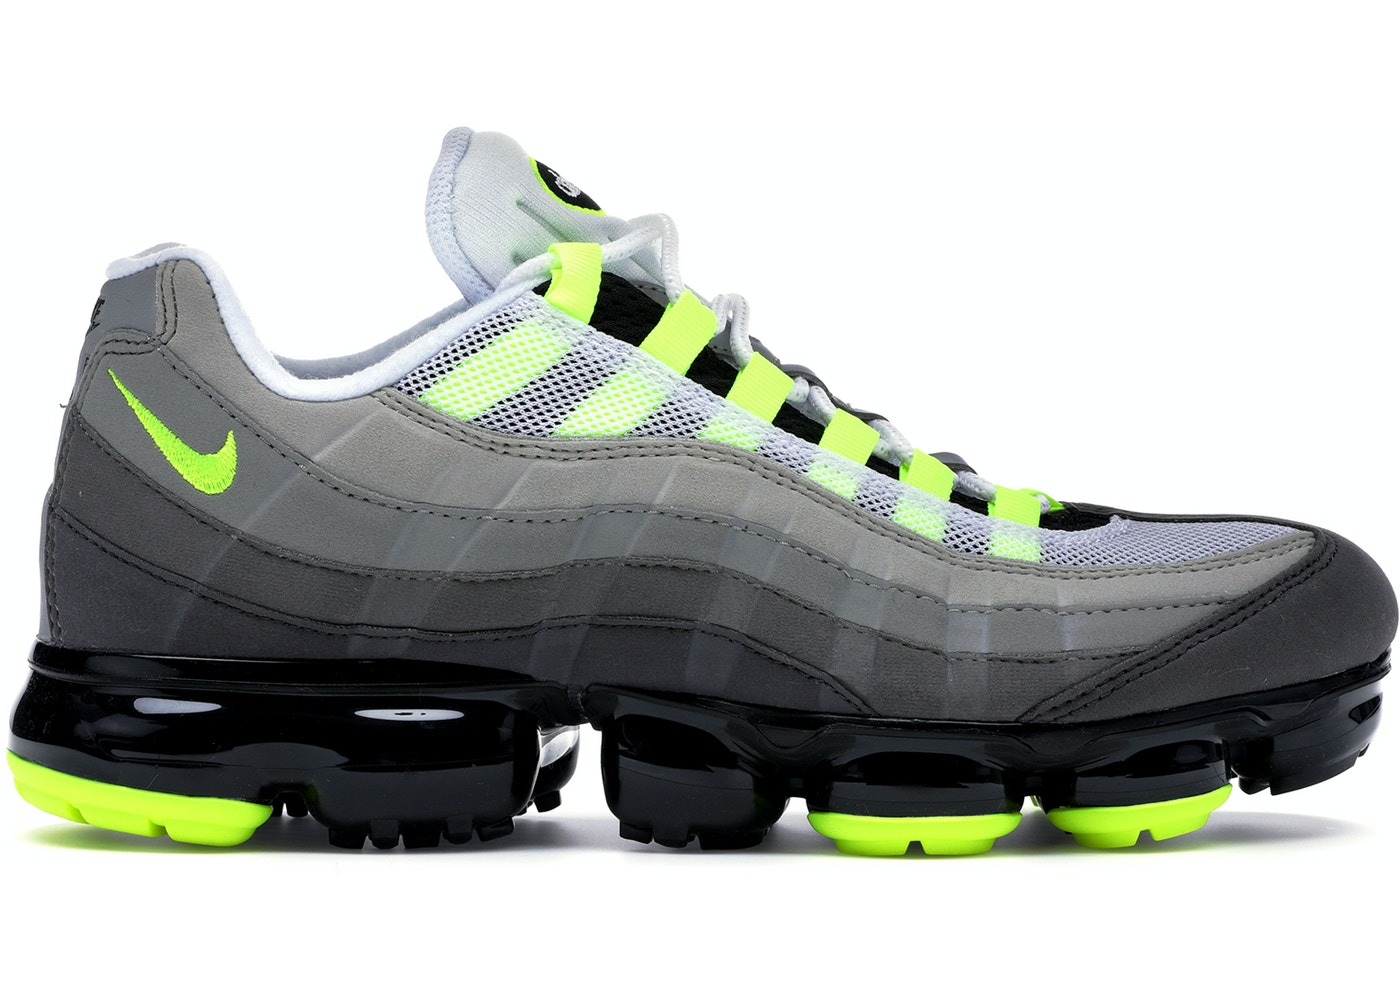 c23125d1330 StockX  Buy and Sell Sneakers